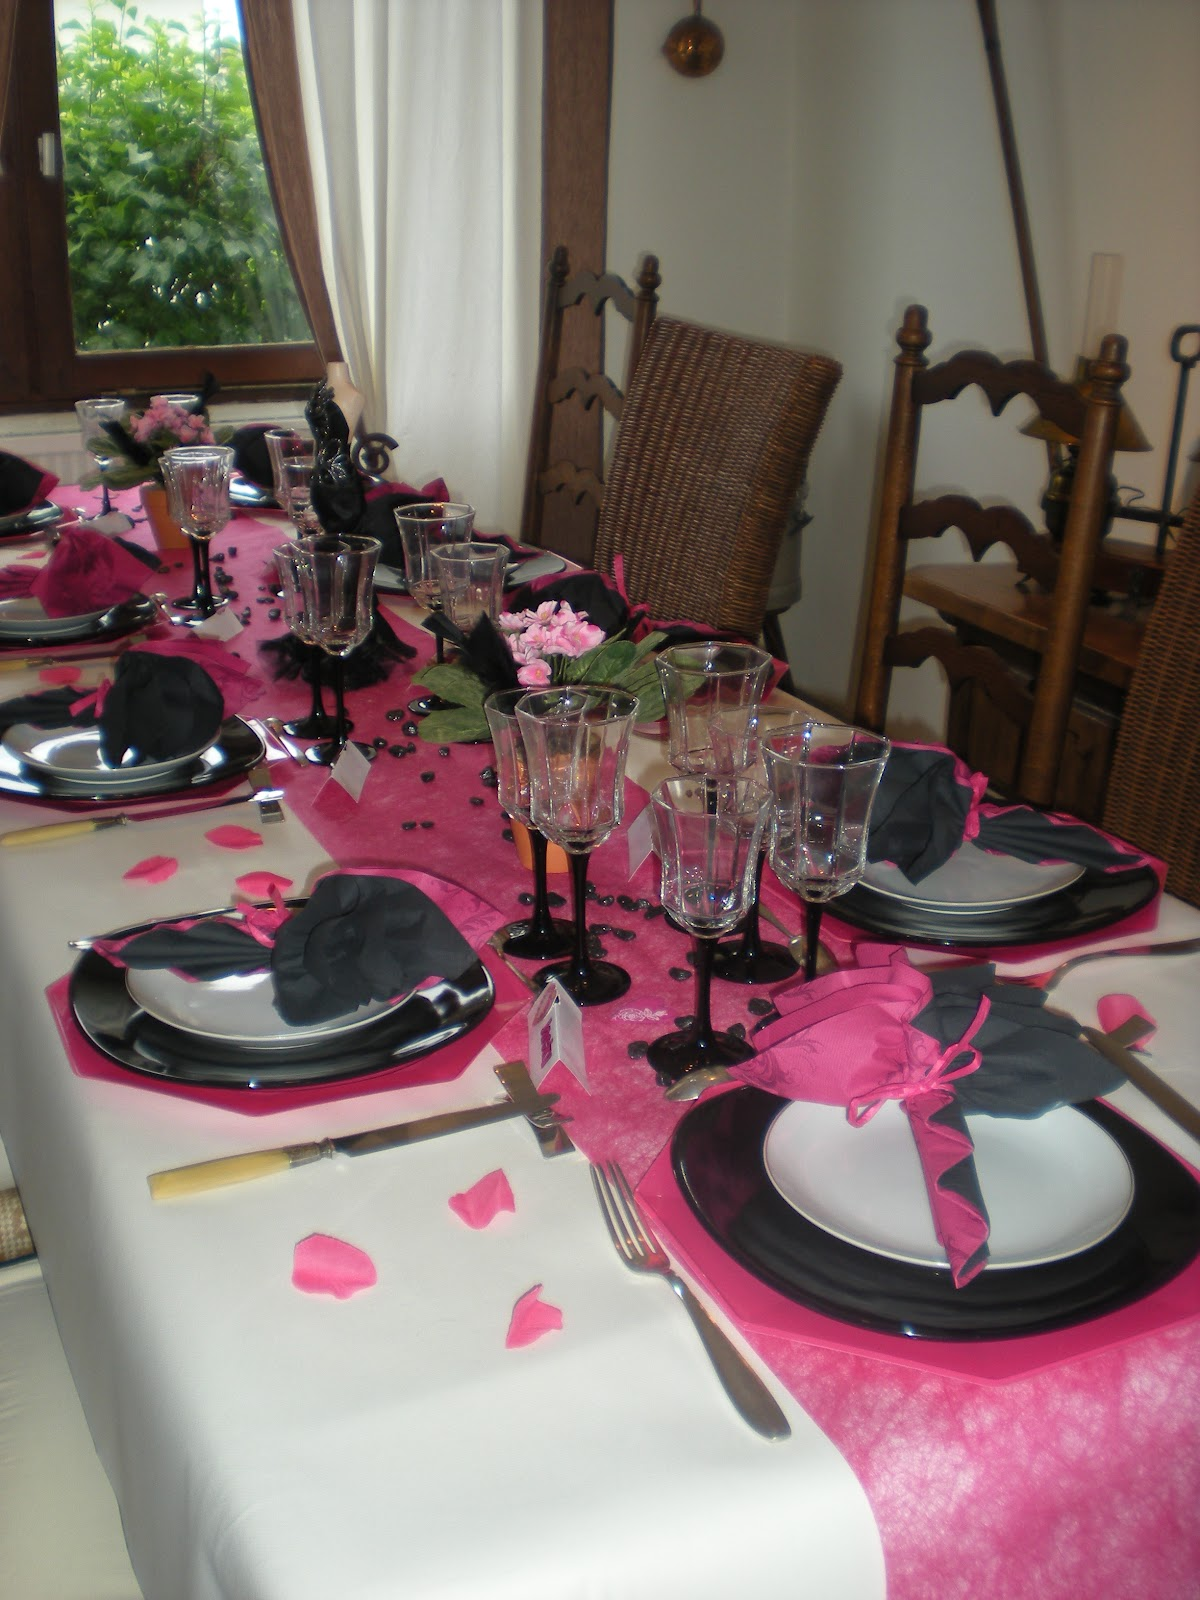 nappe blanche chemin de table rose fushia serviettes noire et fushia. Black Bedroom Furniture Sets. Home Design Ideas